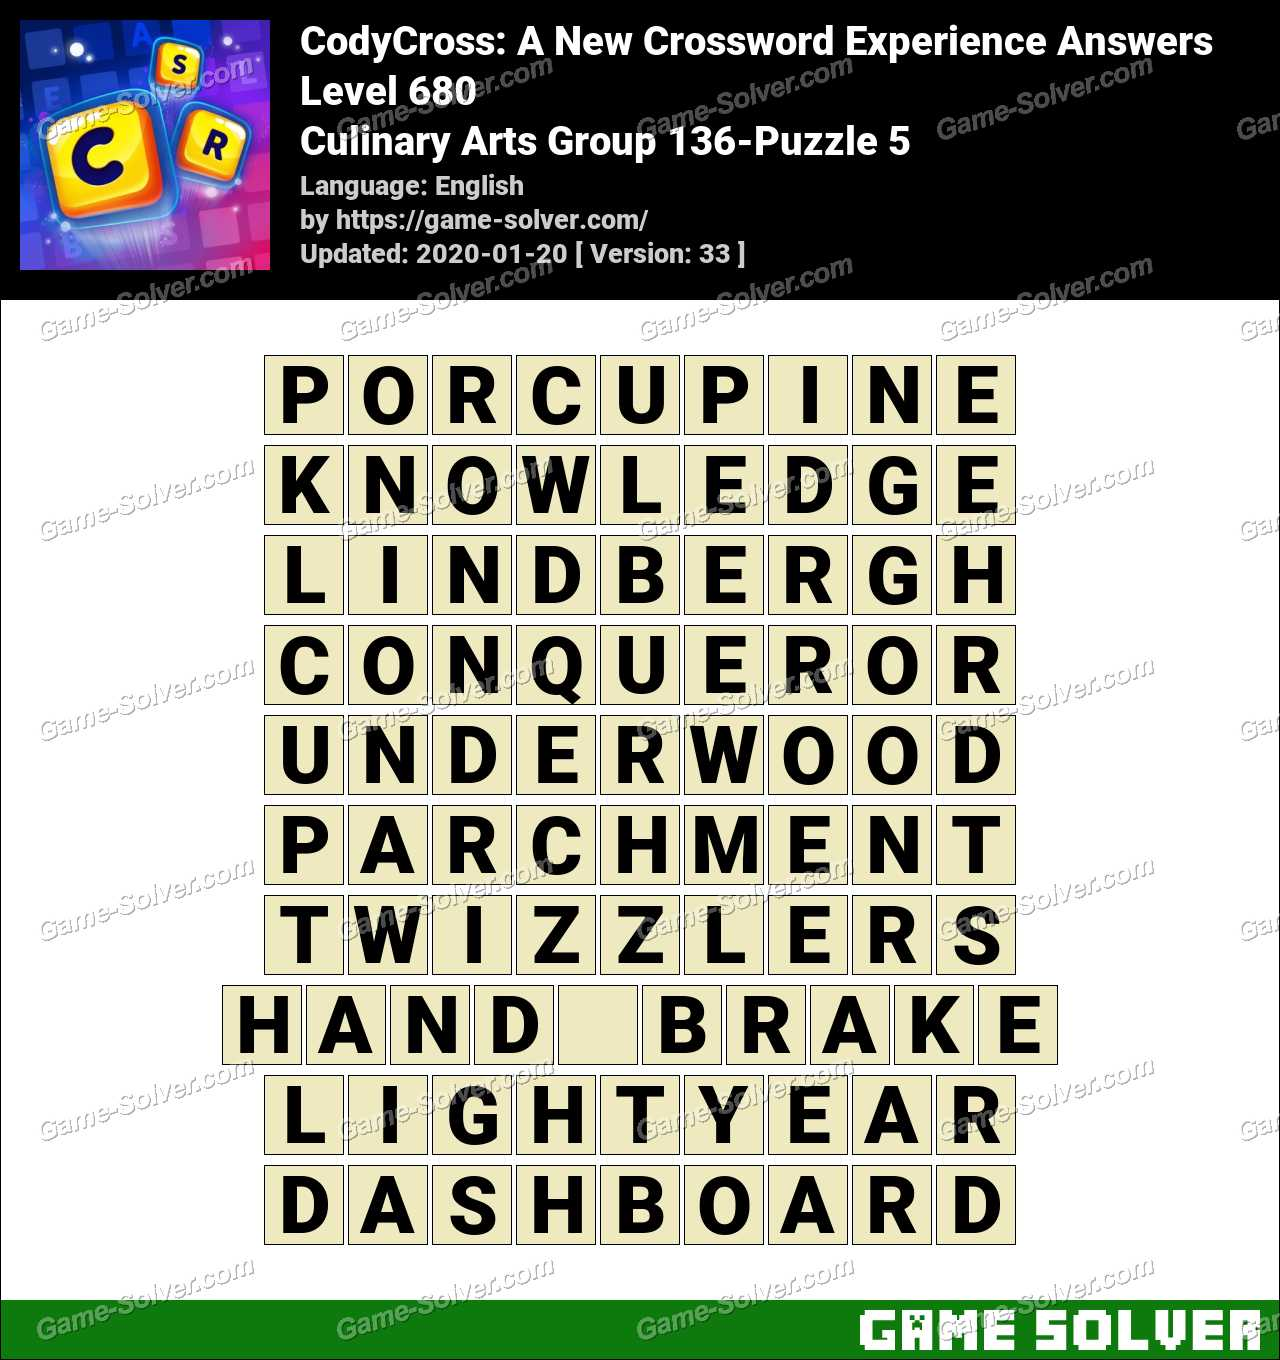 CodyCross Culinary Arts Group 136-Puzzle 5 Answers